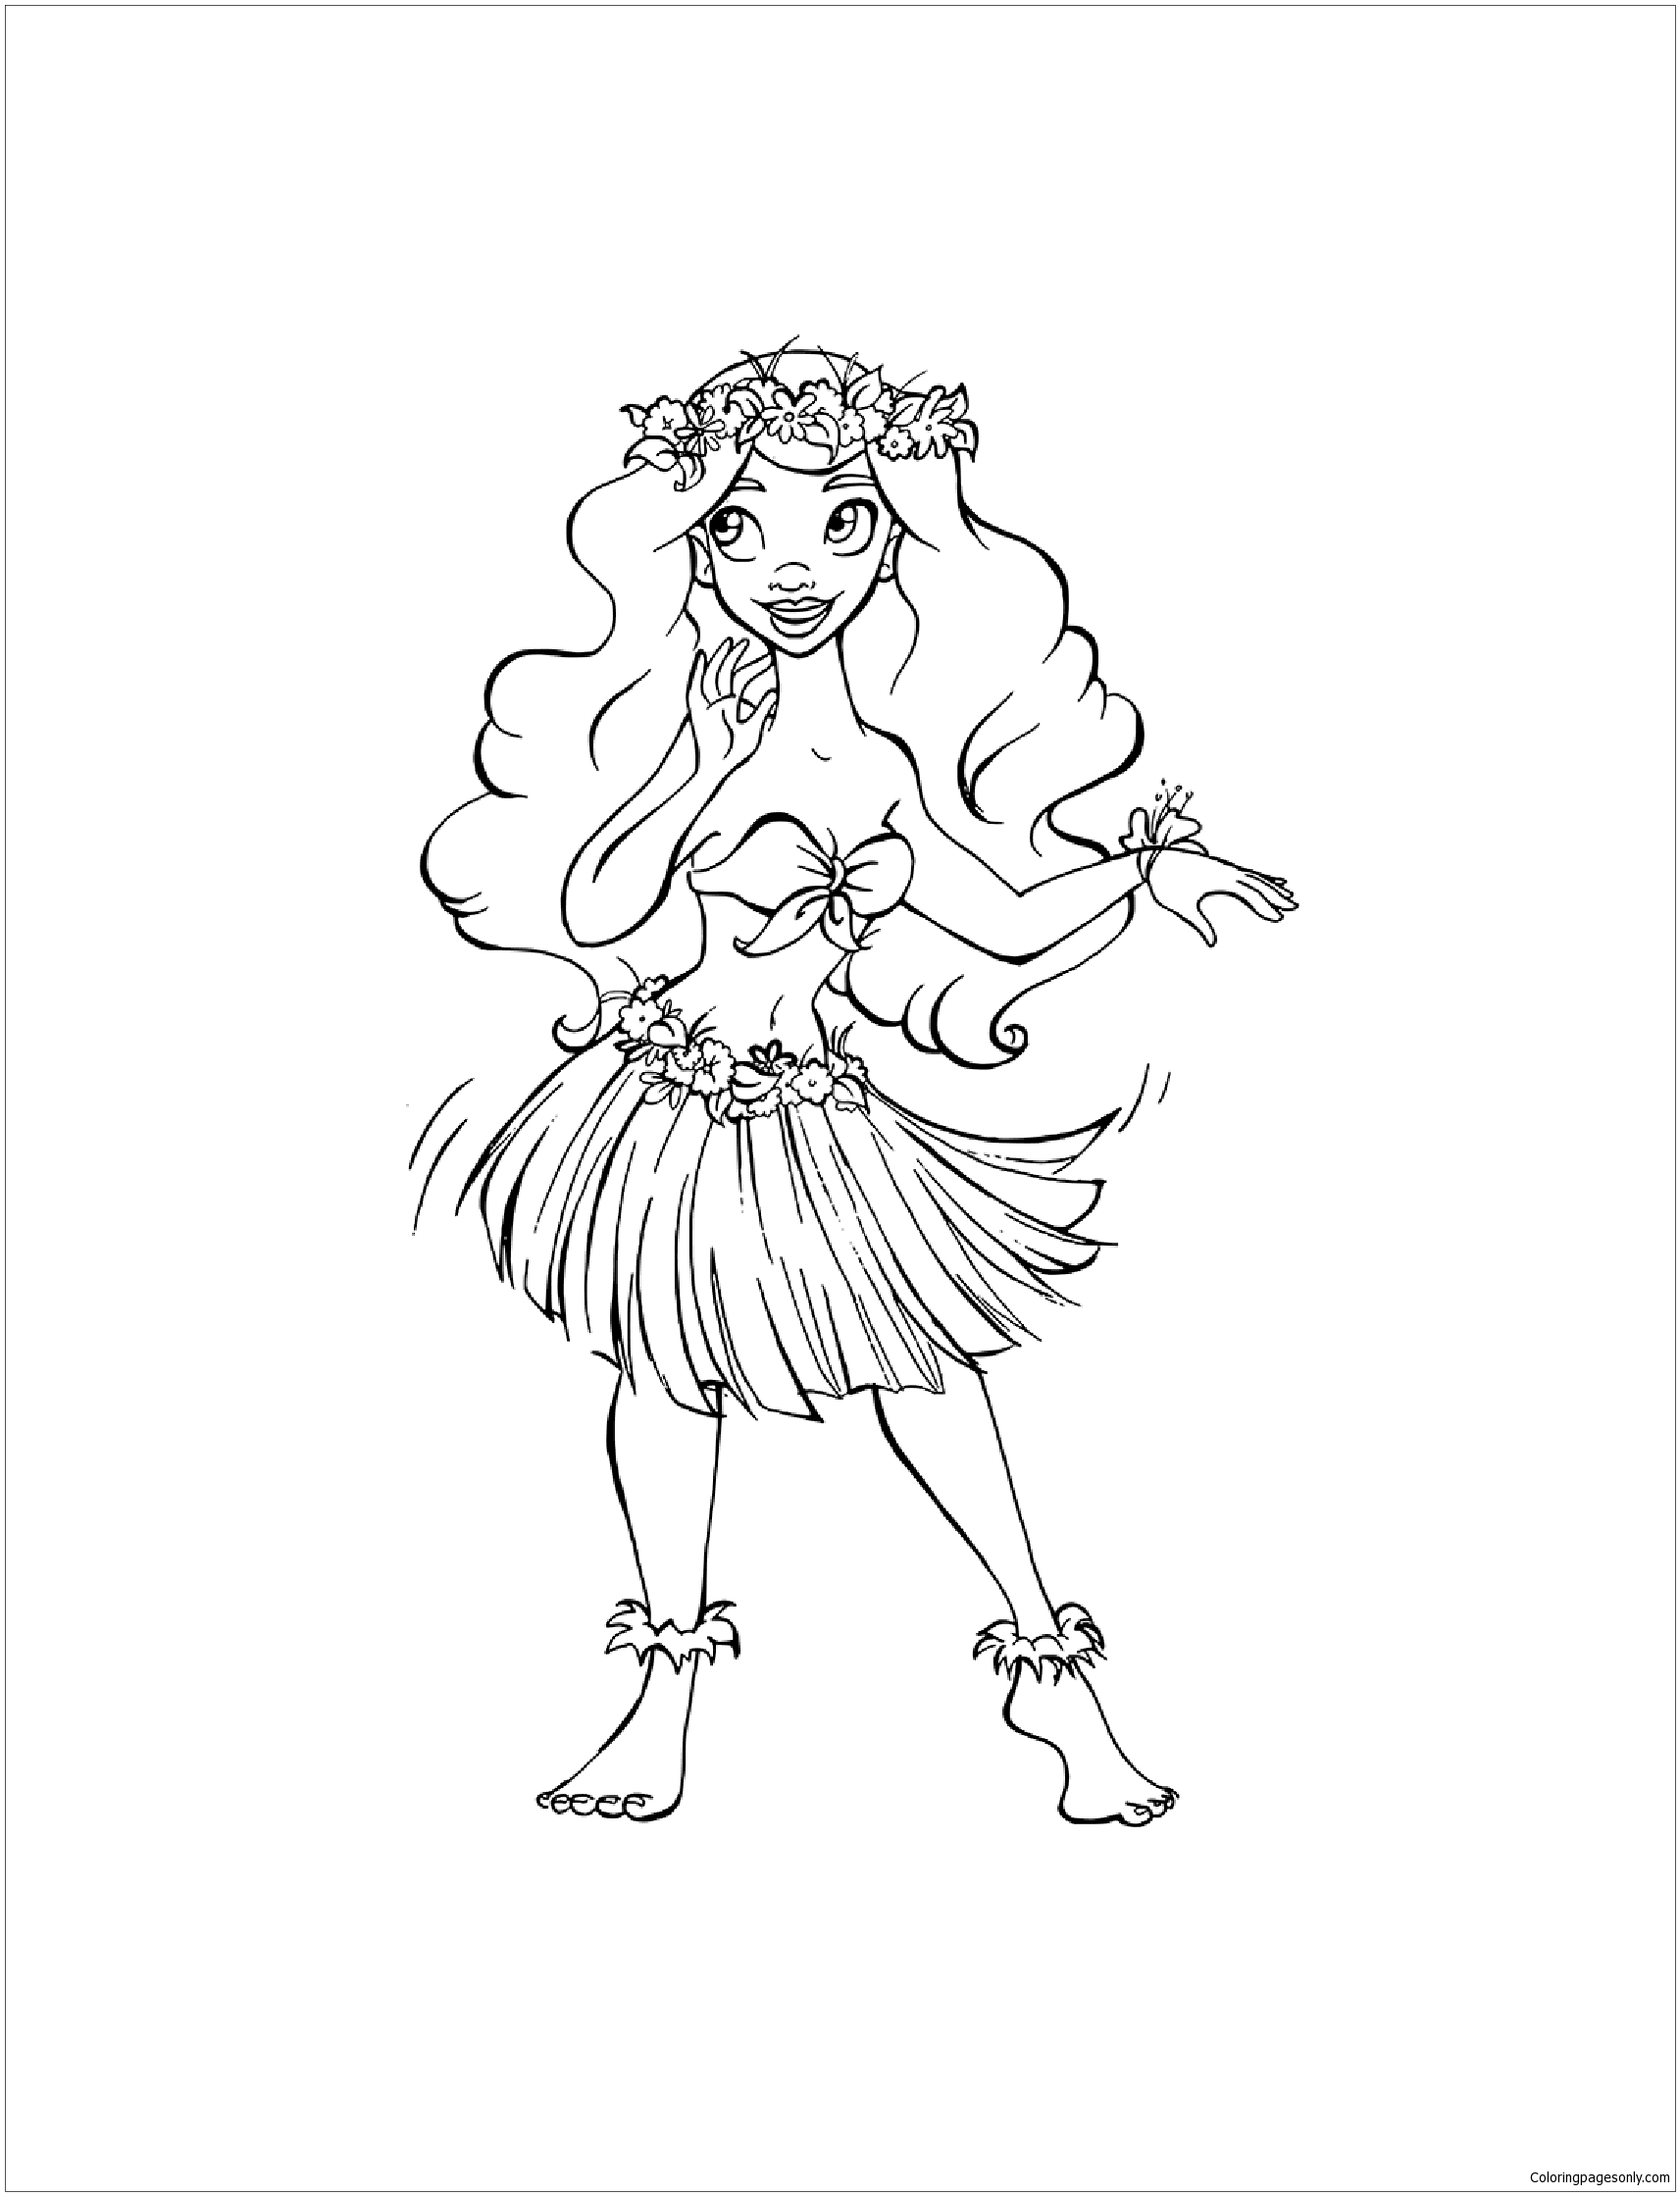 Hula girl coloring page free coloring pages online for Hula girl coloring page